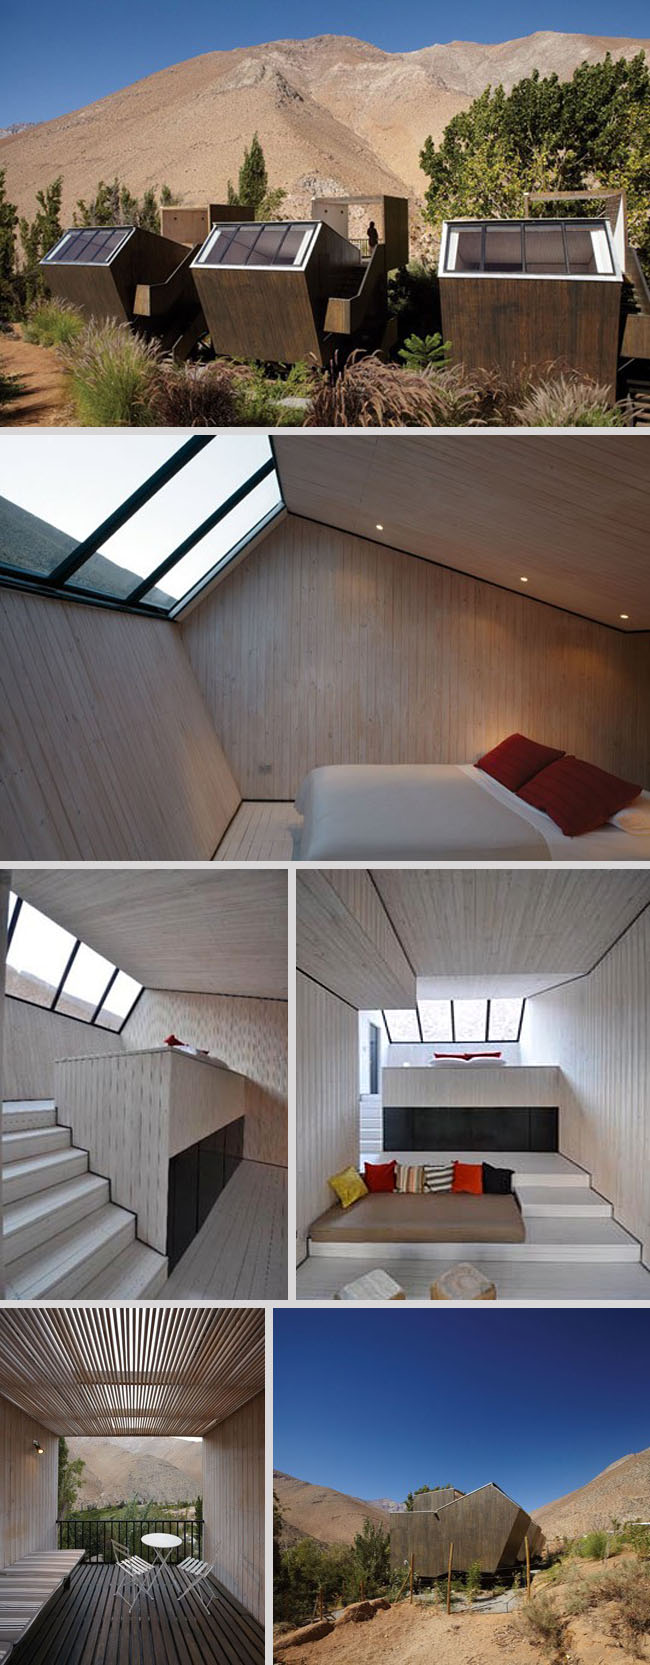 Hotel Elqui Domos new rooms by Rodrigo Duque Motta, Contemporary Chilean Architecture, skylights,